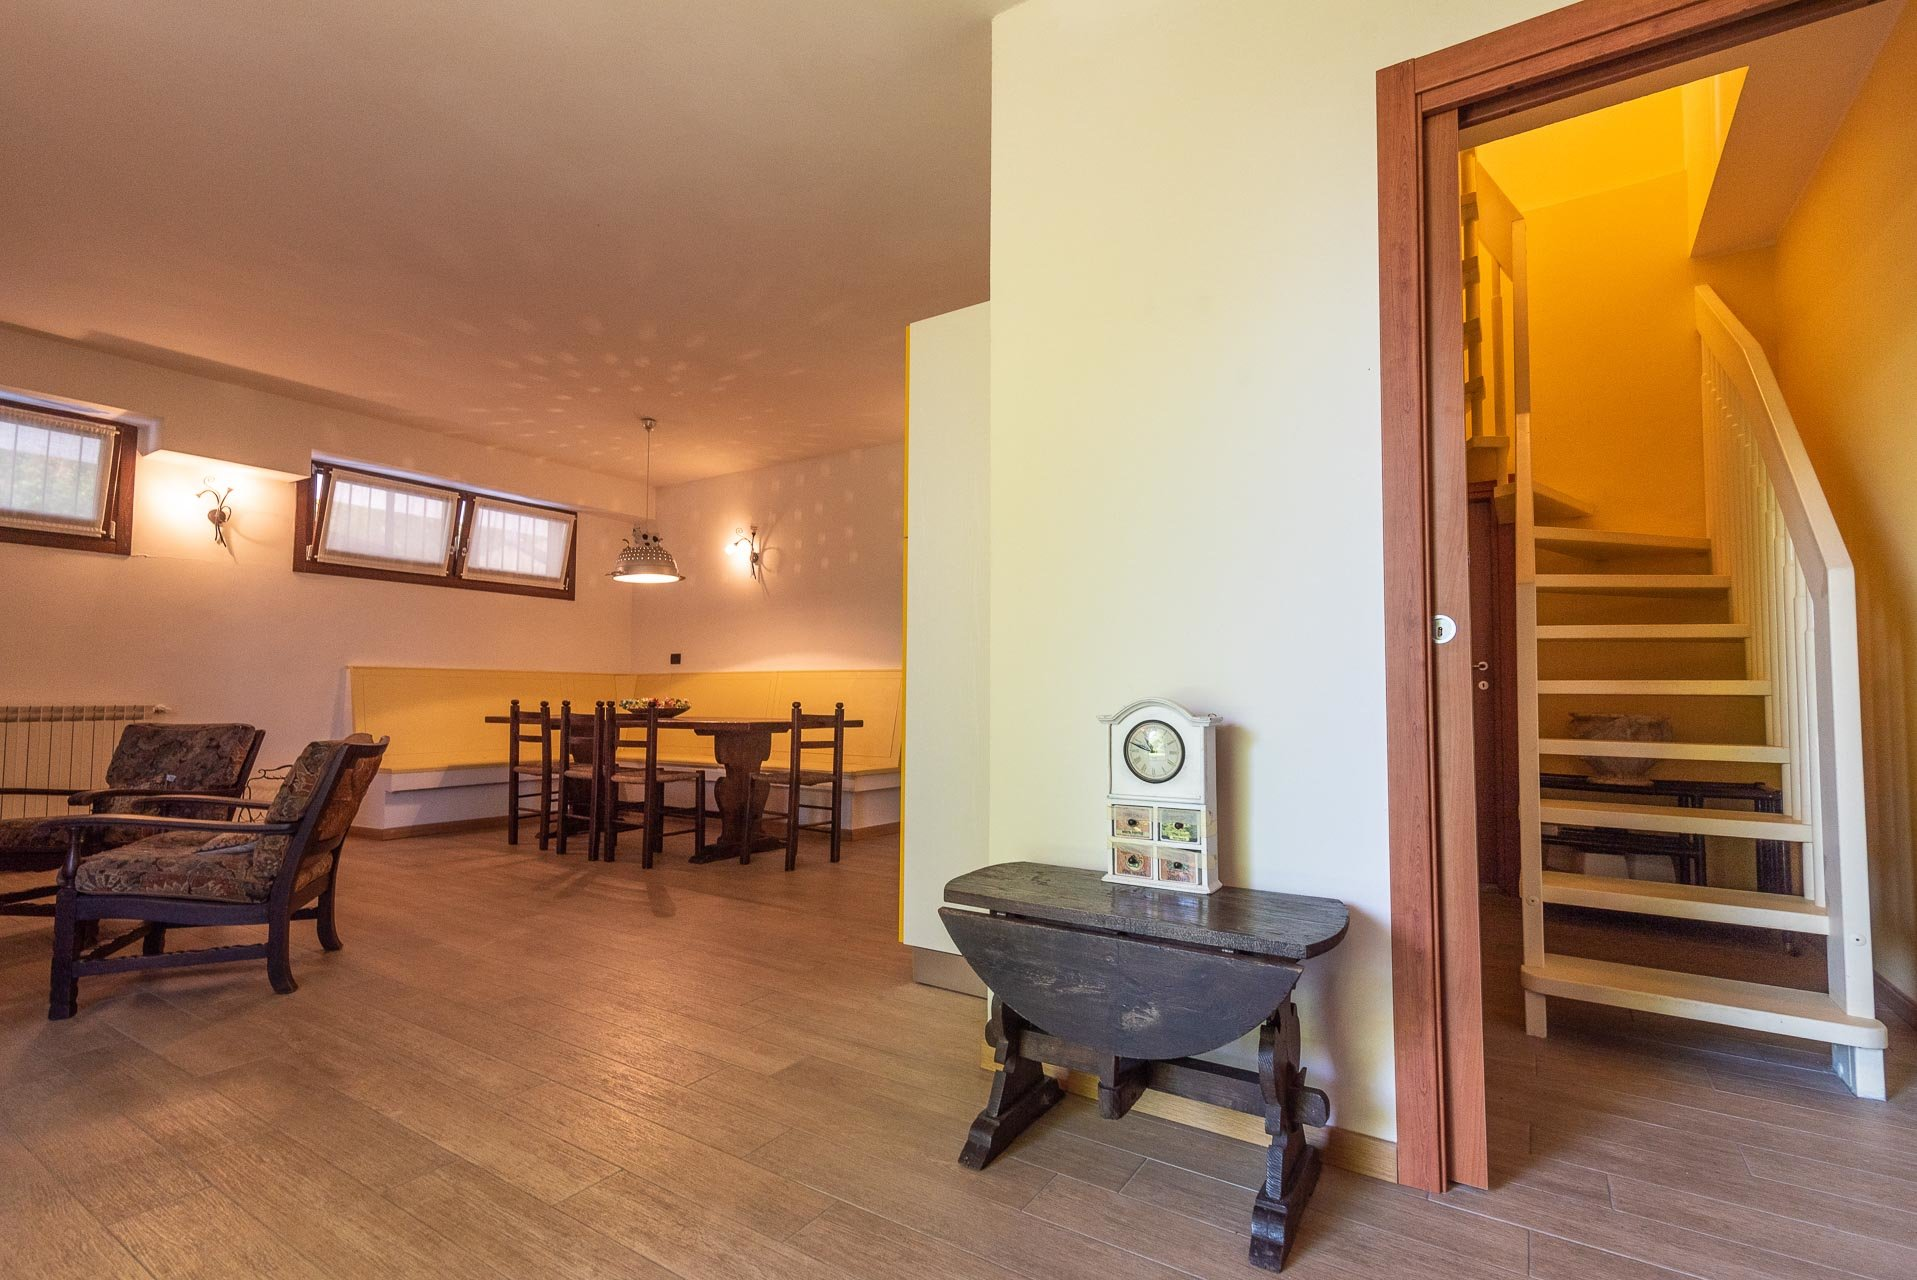 Semi-detached house for sale in Stresa, with swimming pool